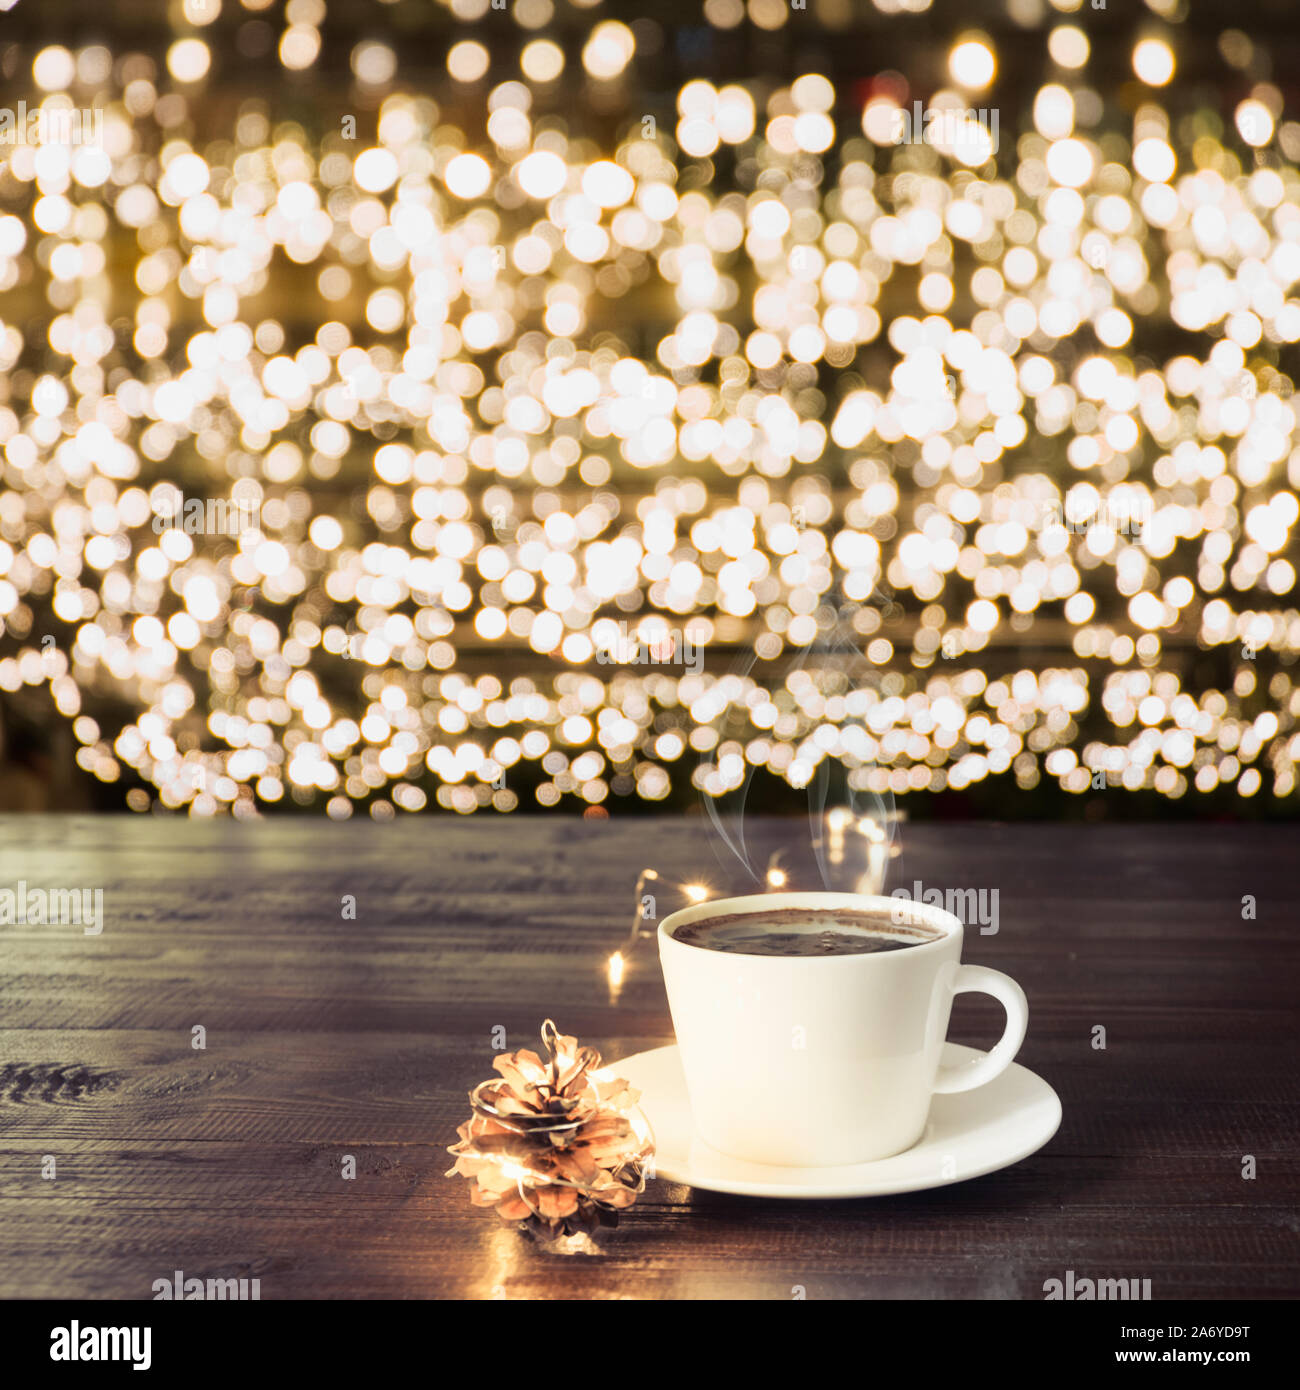 Cup Of Black Coffee And Decor On Wooden Board In Cafe Blurred Gold Garland As Background Christmas Time Xmas Pattern Stock Photo Alamy